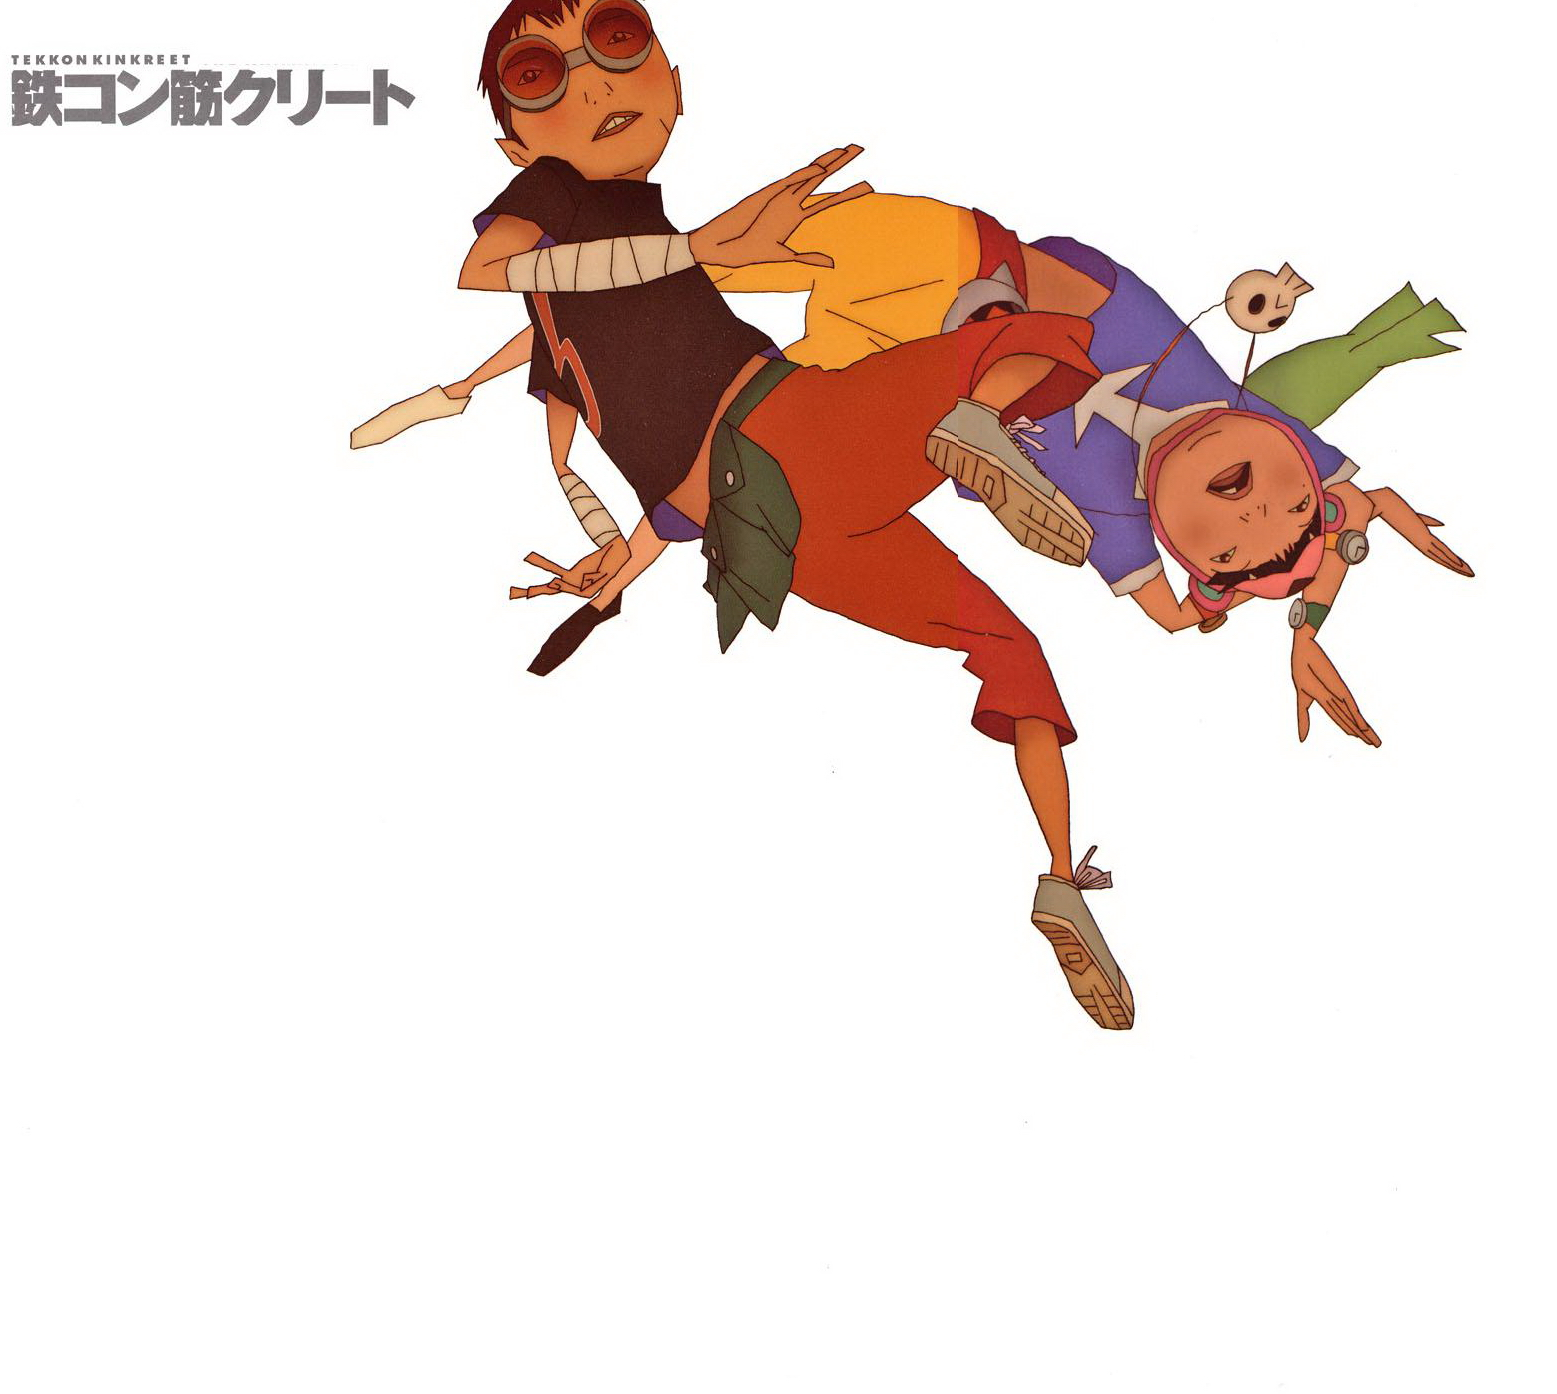 Tekkon kinkurito movie